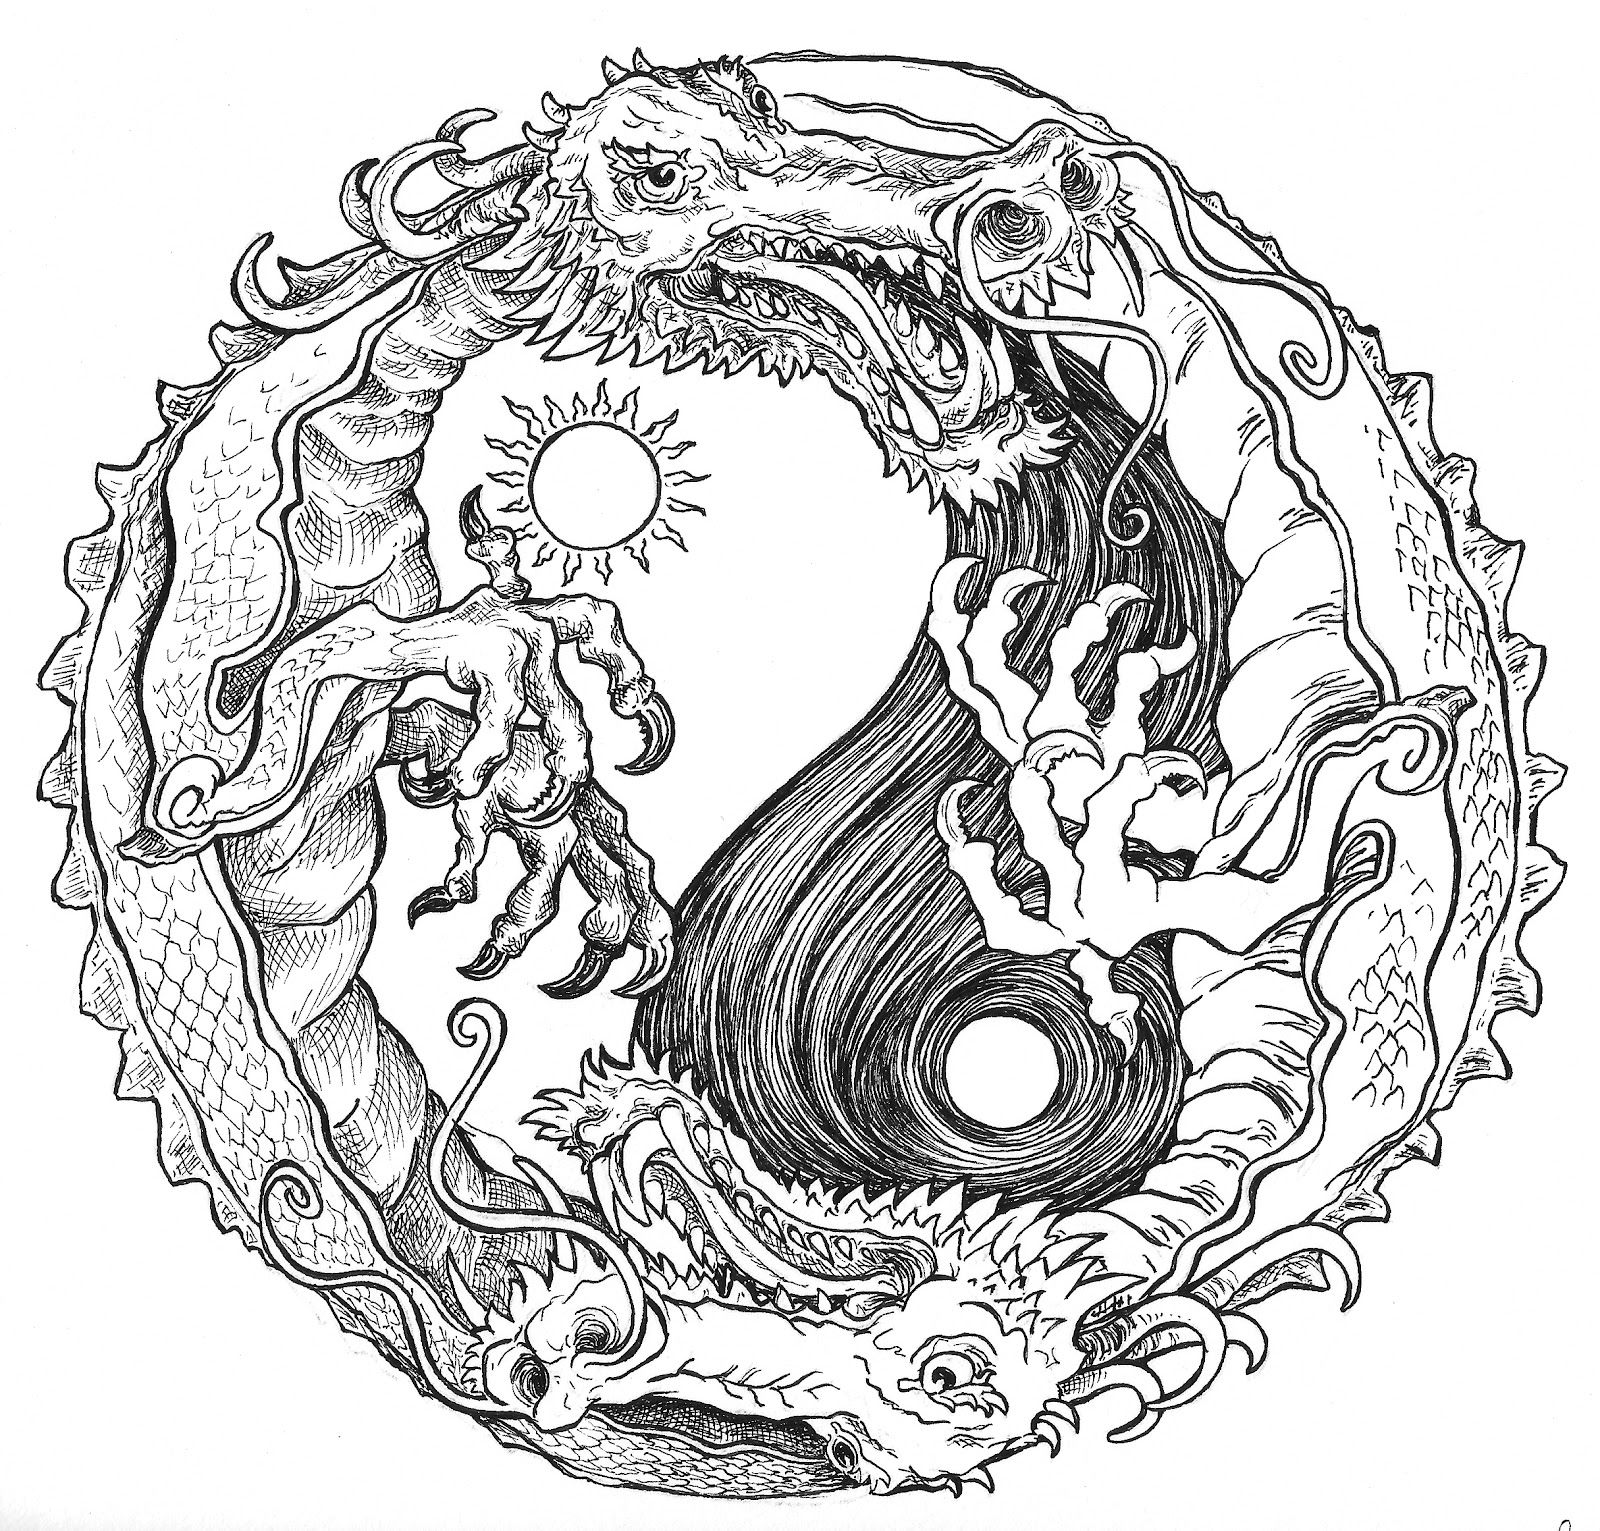 sun and moon dragon yin yang coloring pages colouring adult detailed advanced printable kleuren voor volwassenen - Dragon Coloring Pages For Adults